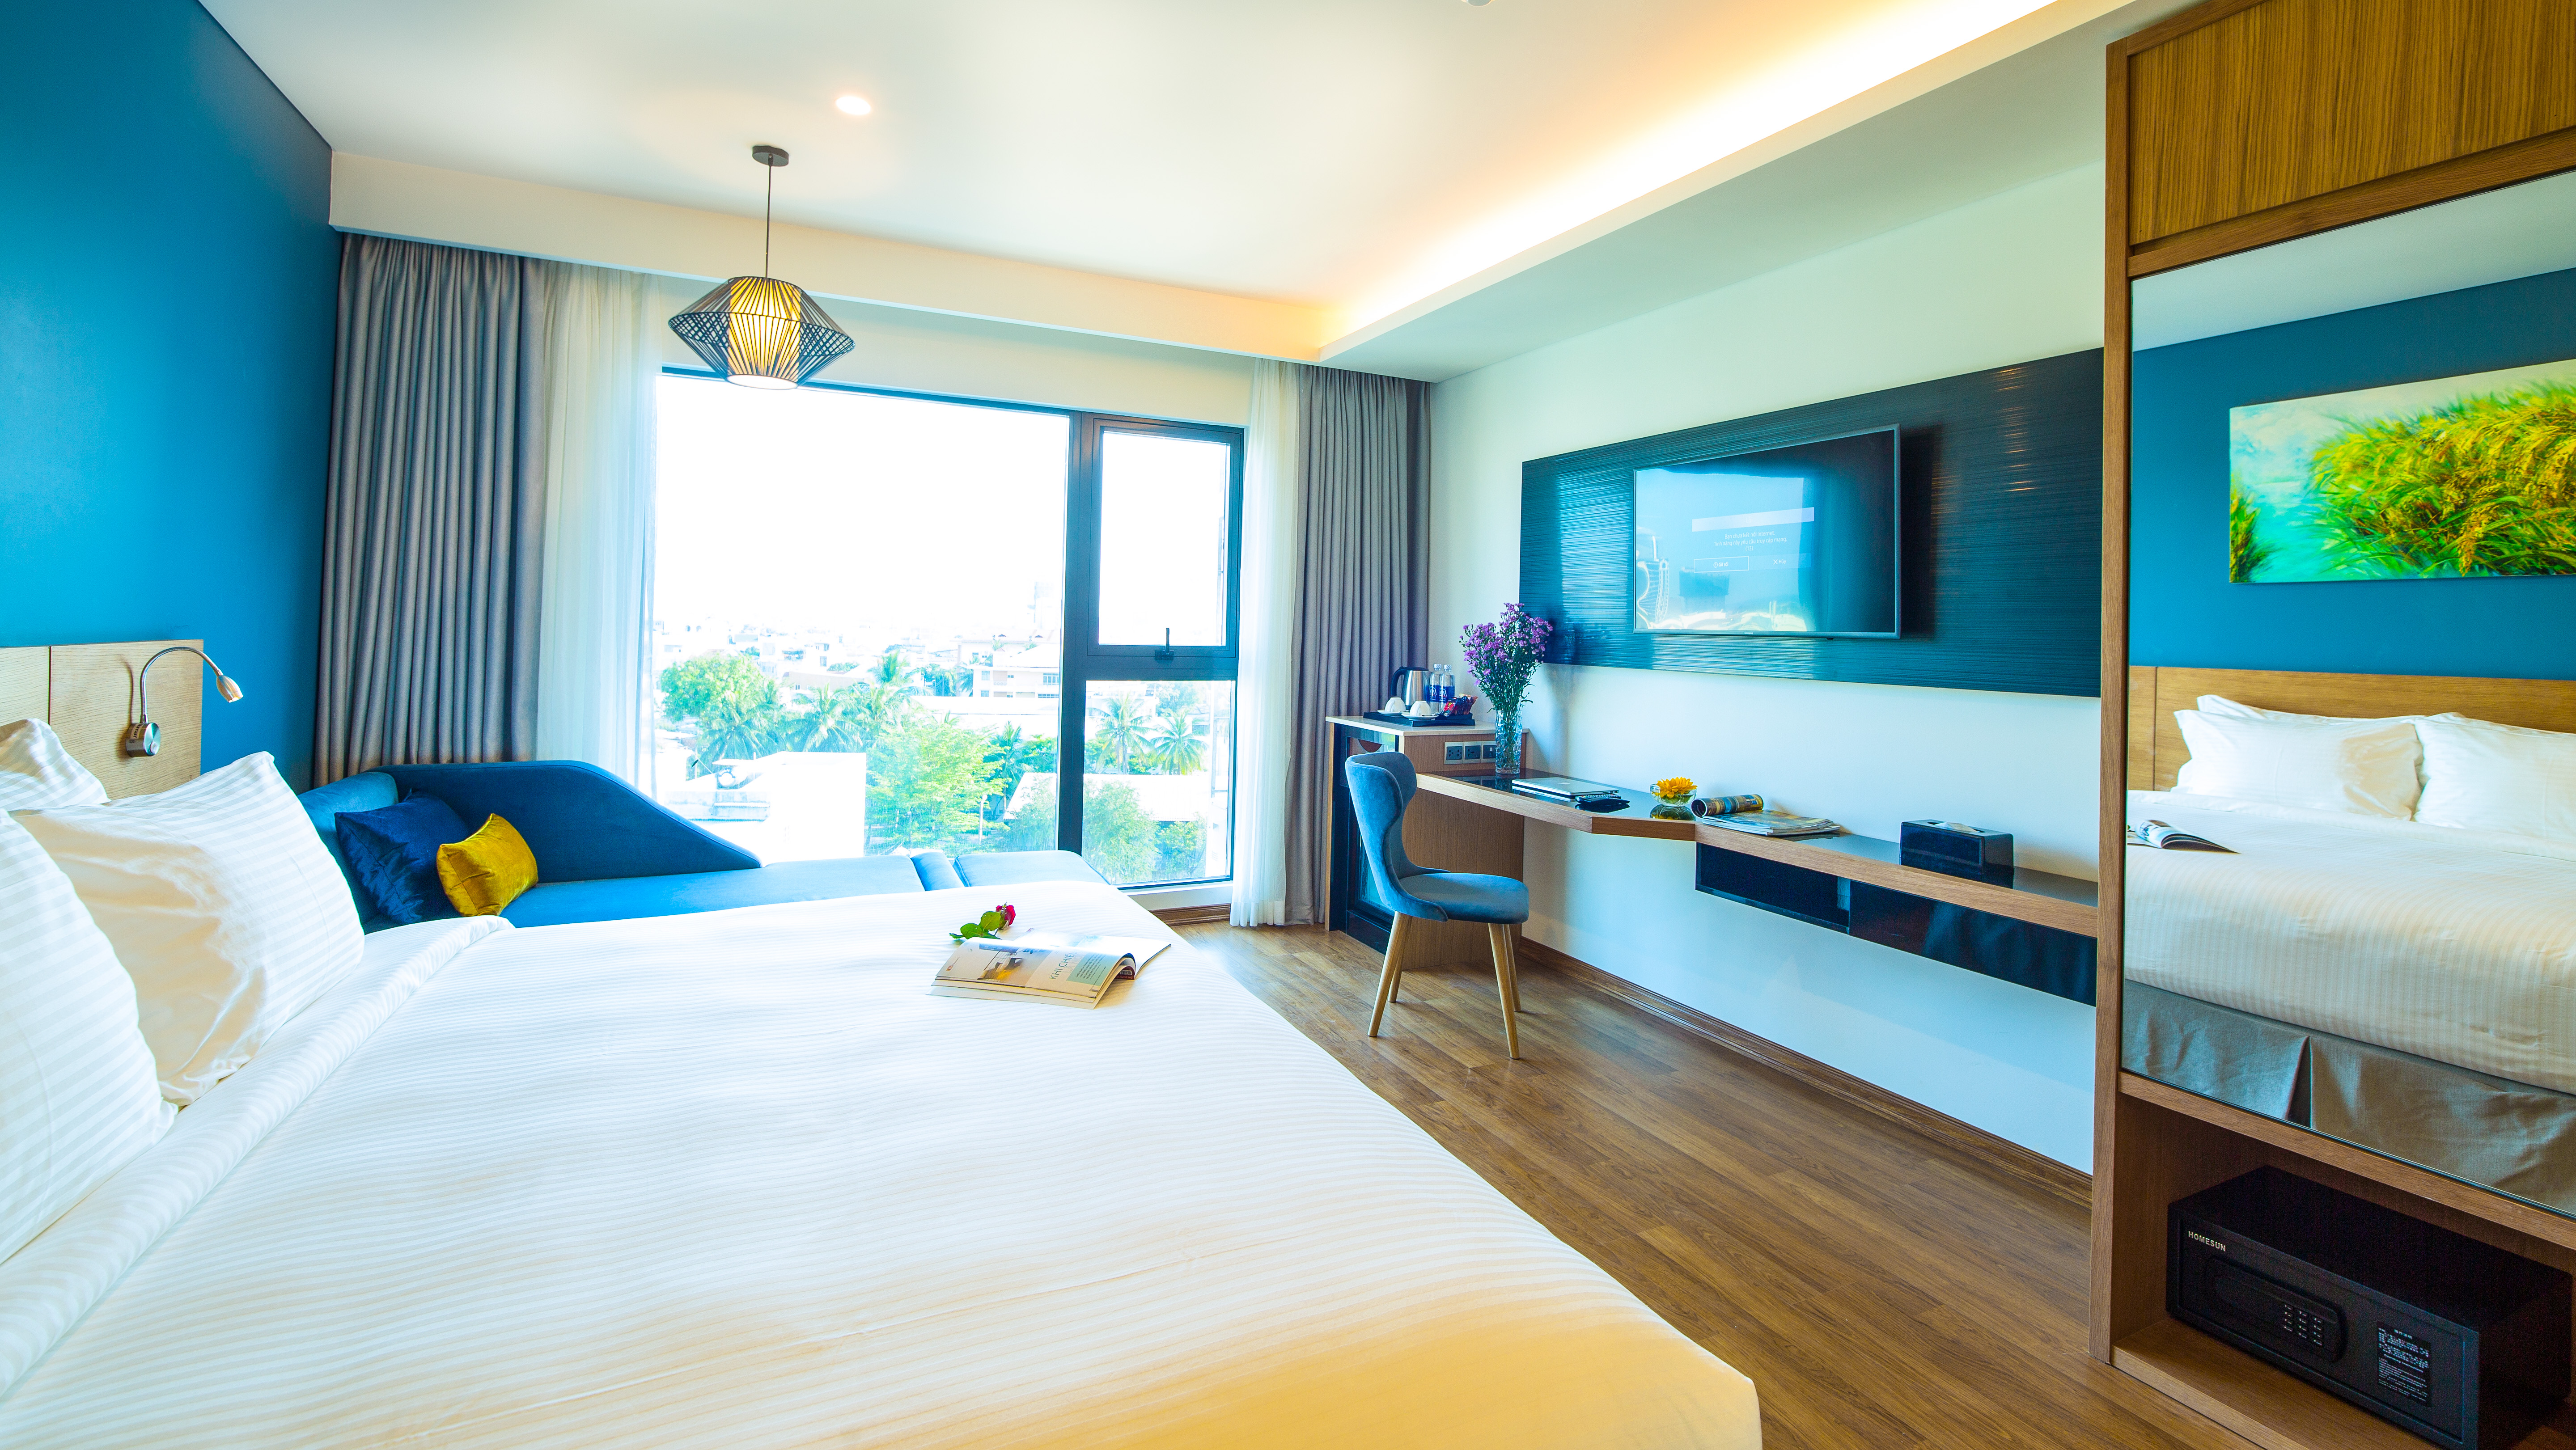 Hotel & Spa - FAMILY SUITE